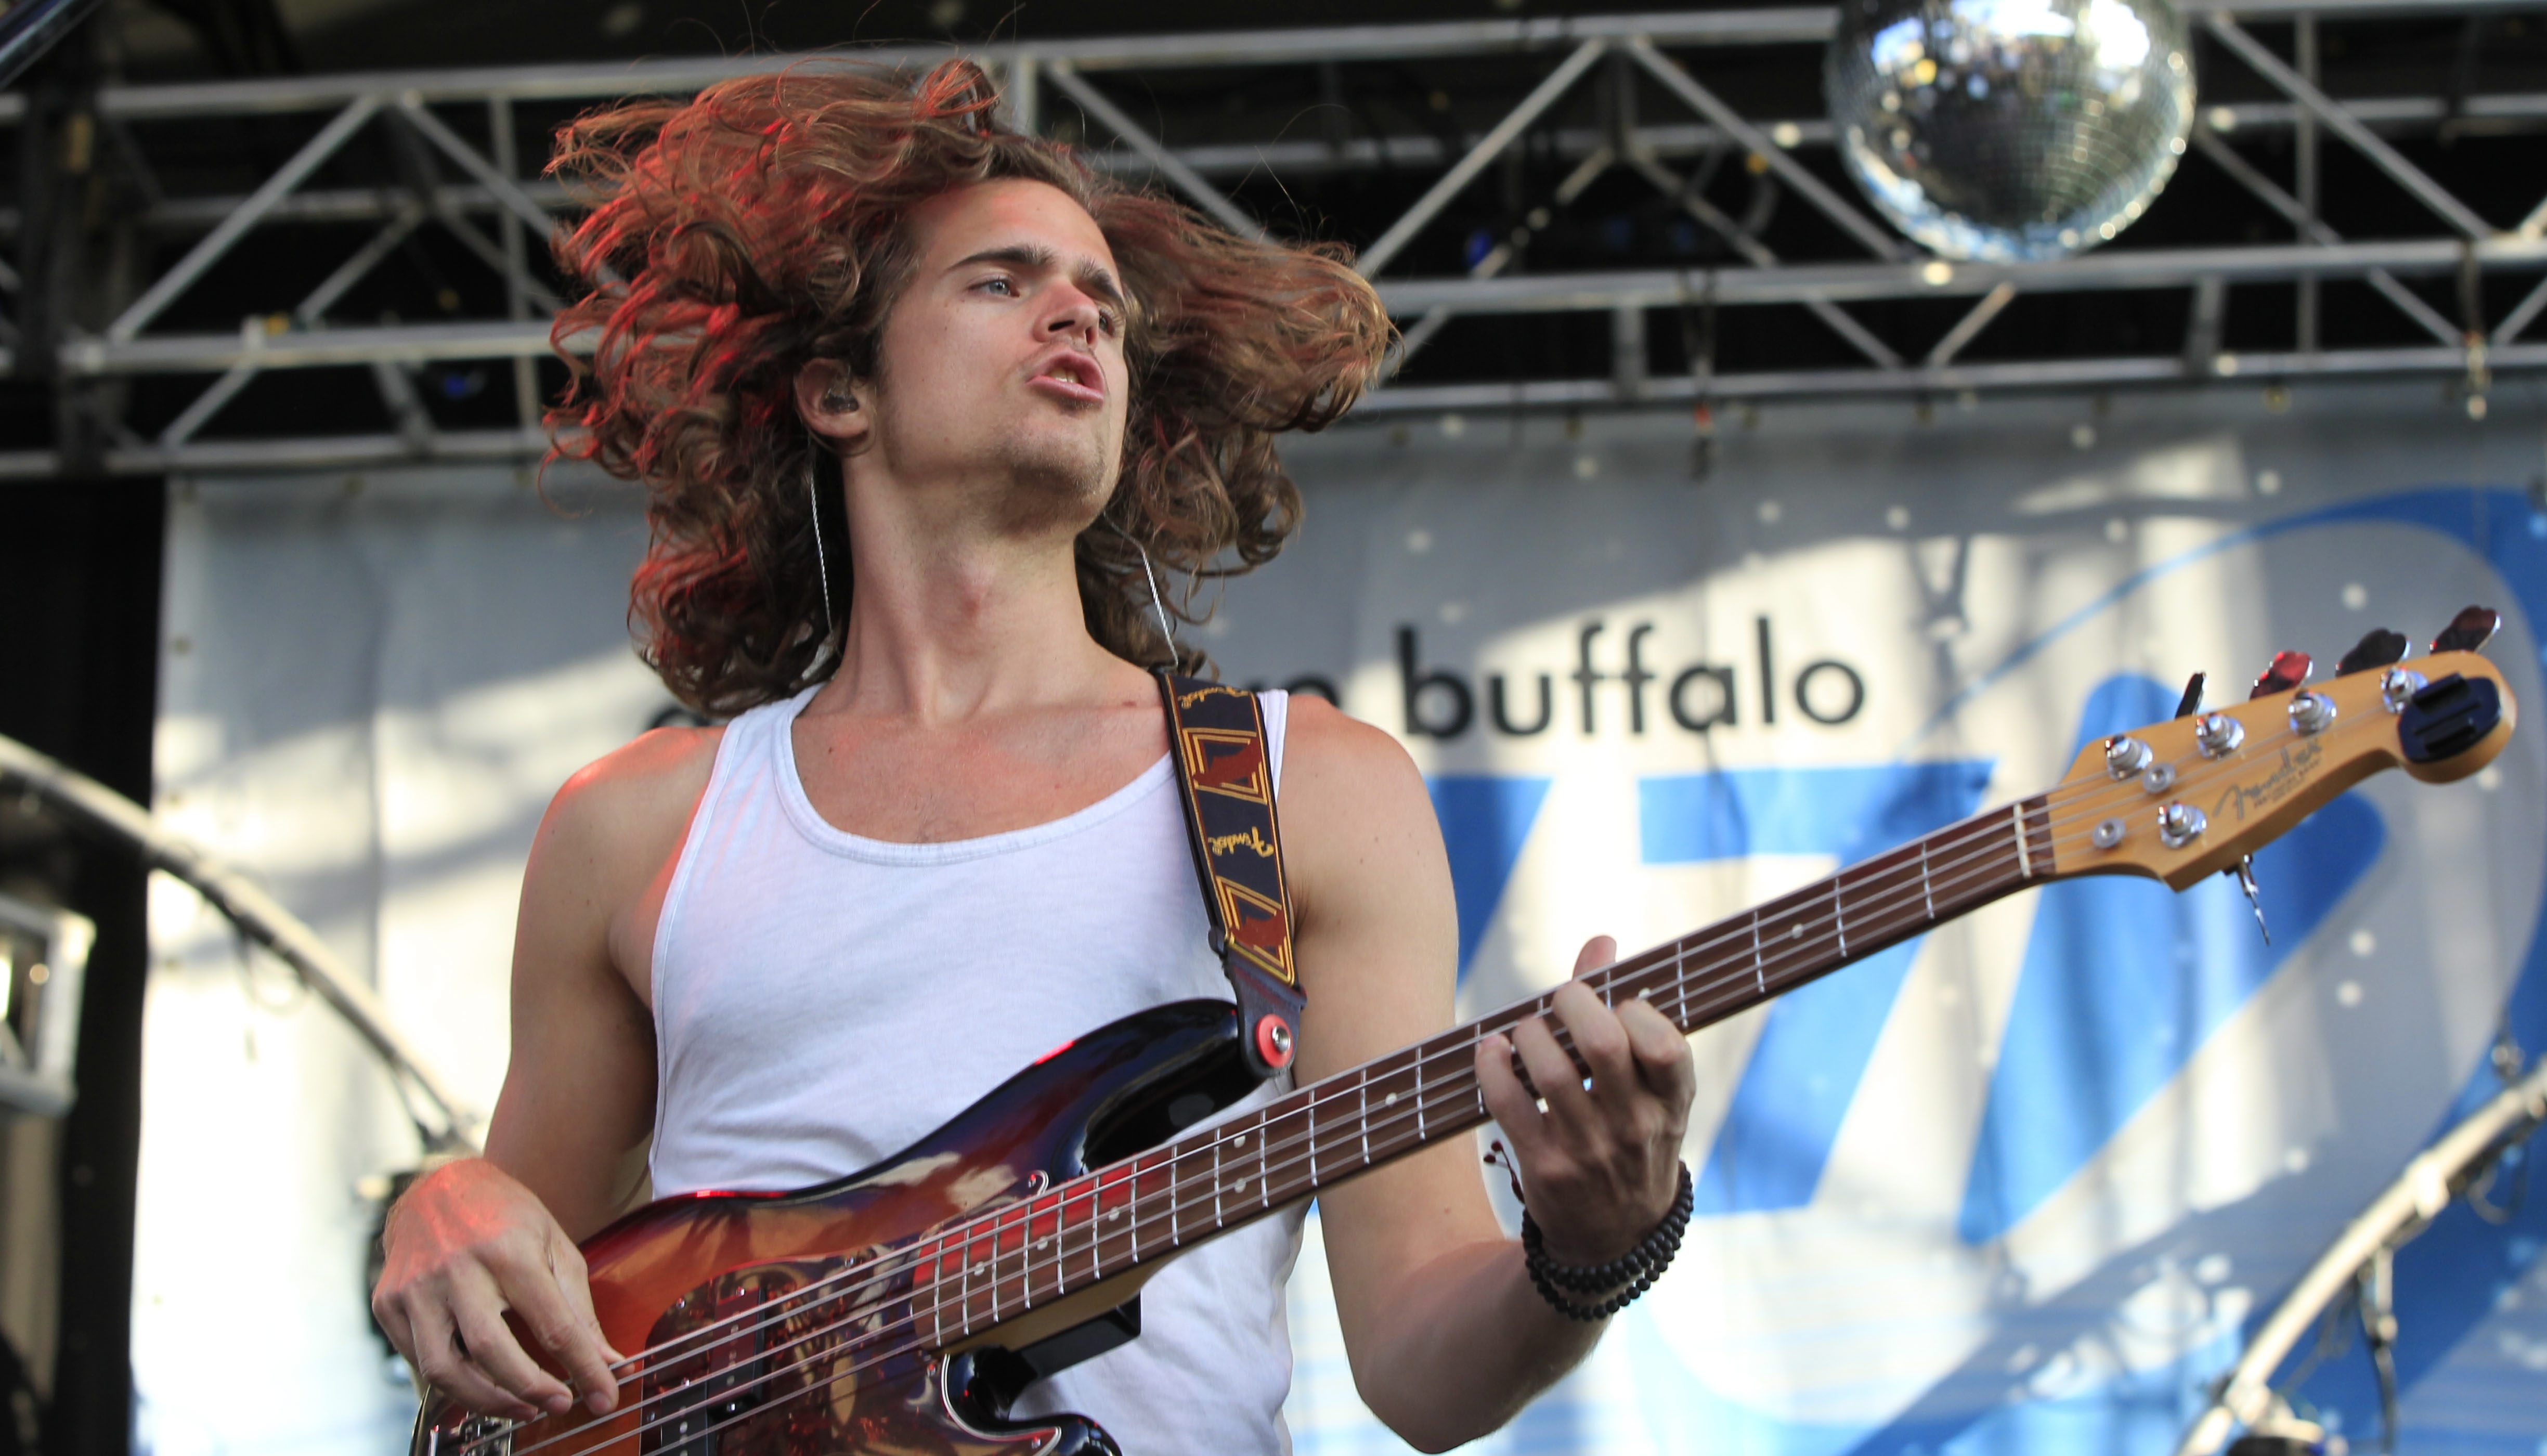 Dylan Kongos of the band KONGOS performs at Kerfuffle at Canalside on Saturday. (Harry Scull Jr./Buffalo News)